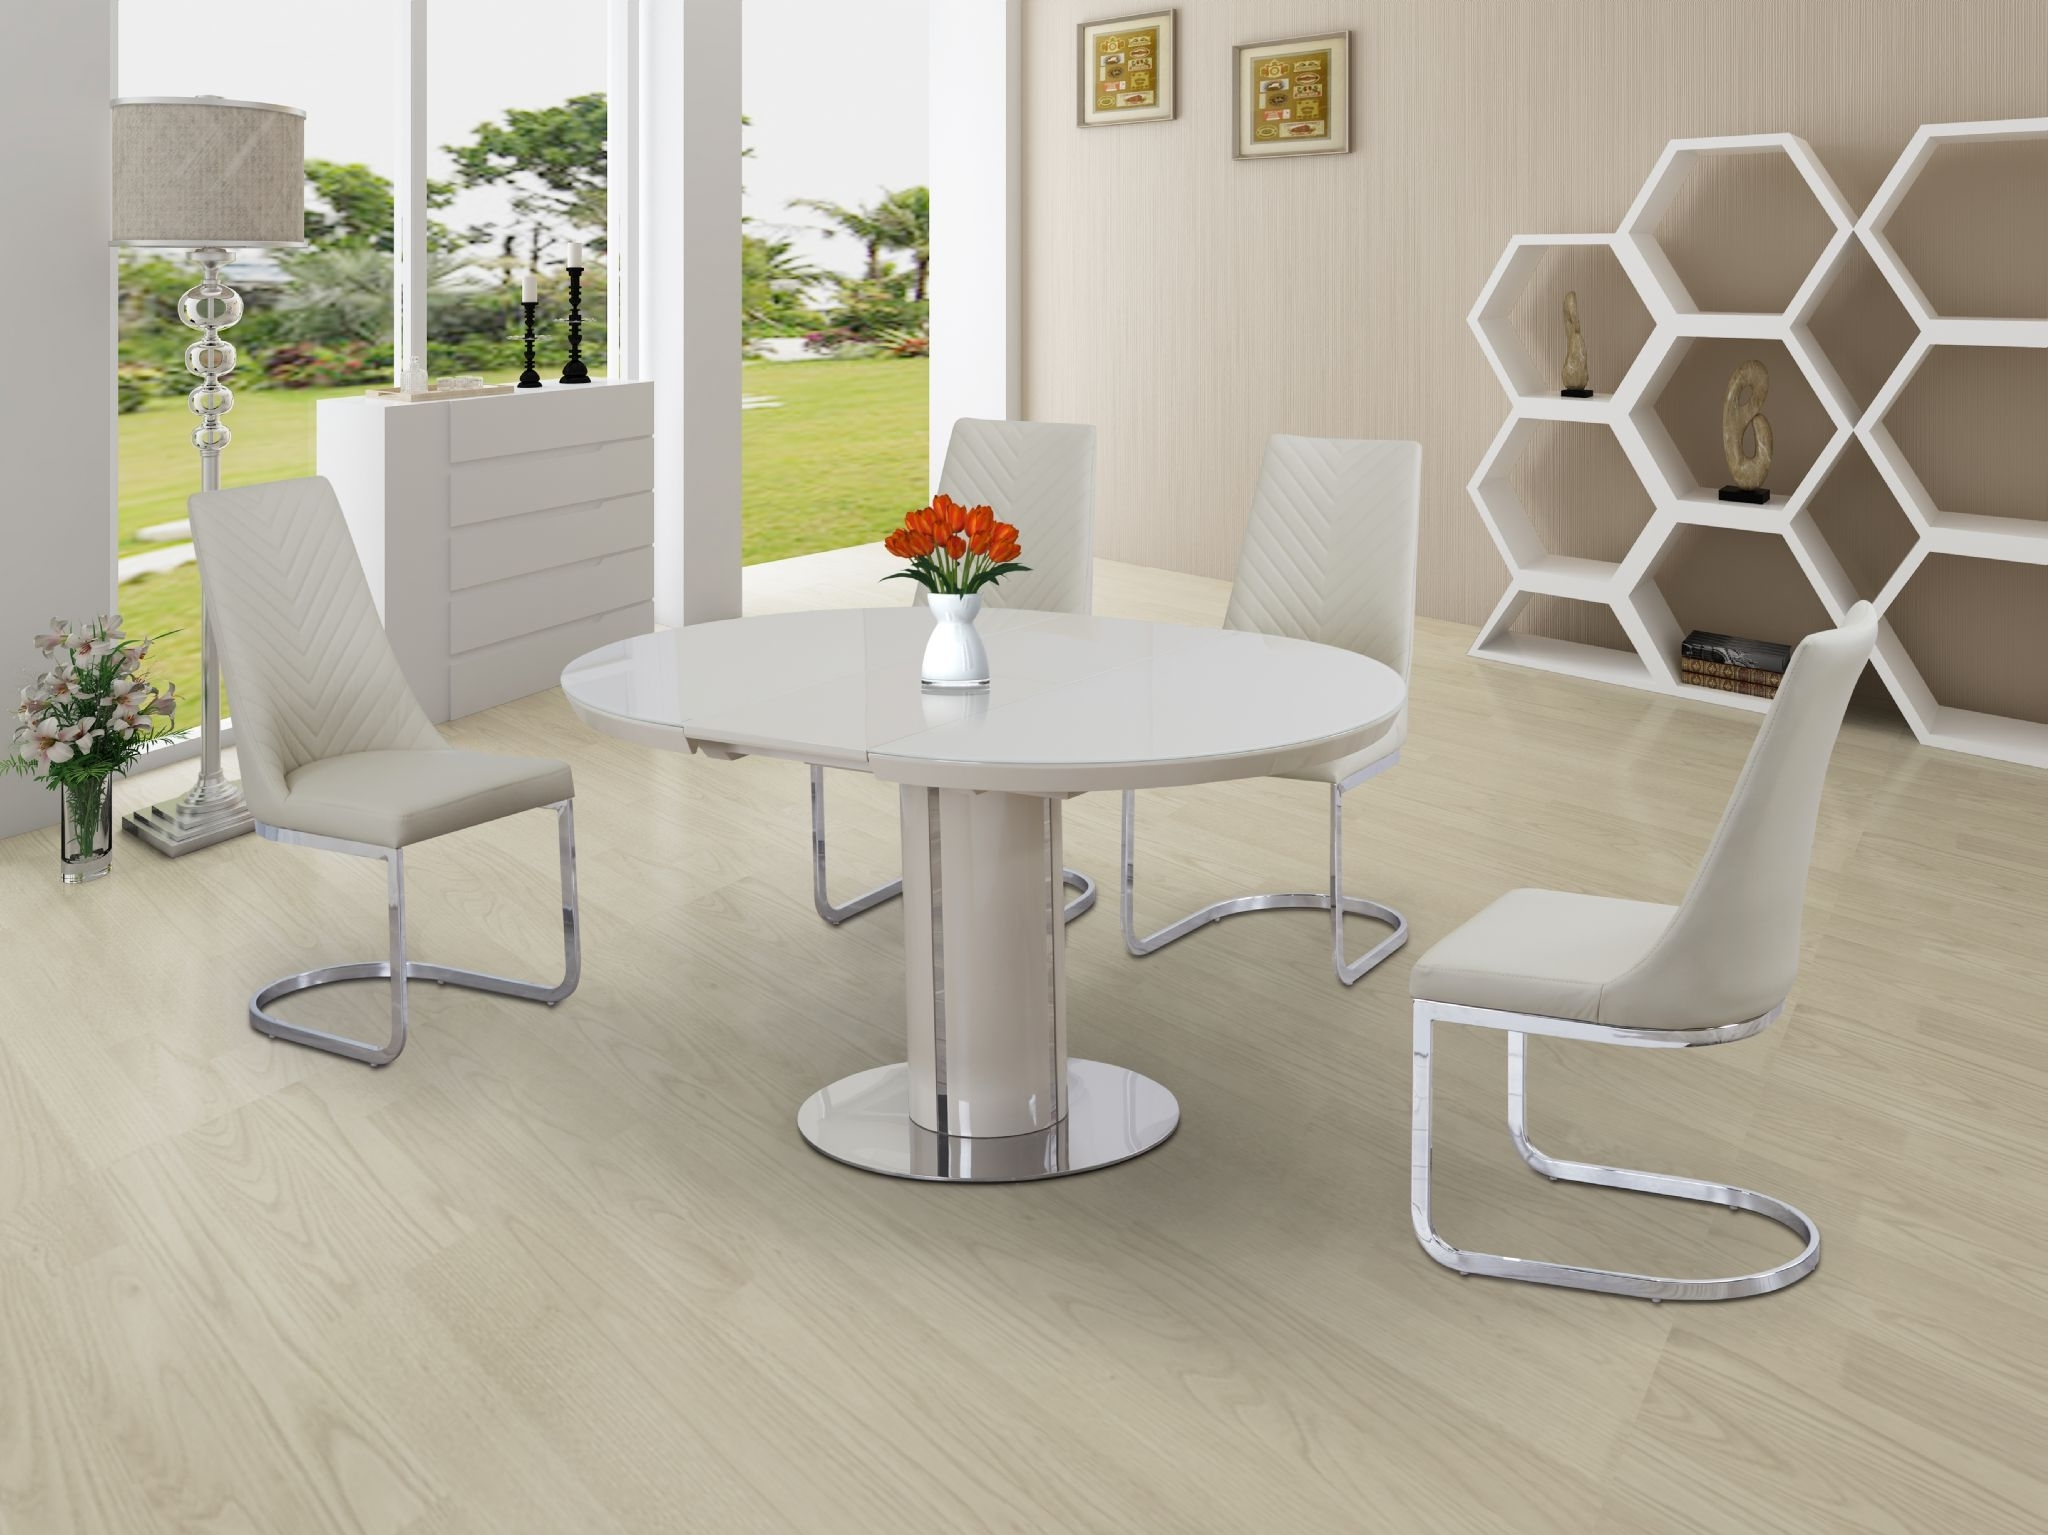 Eclipse Round Oval Gloss & Glass Extending 110 To 145 Cm Dining inside Most Up-to-Date Round Extending Dining Tables And Chairs